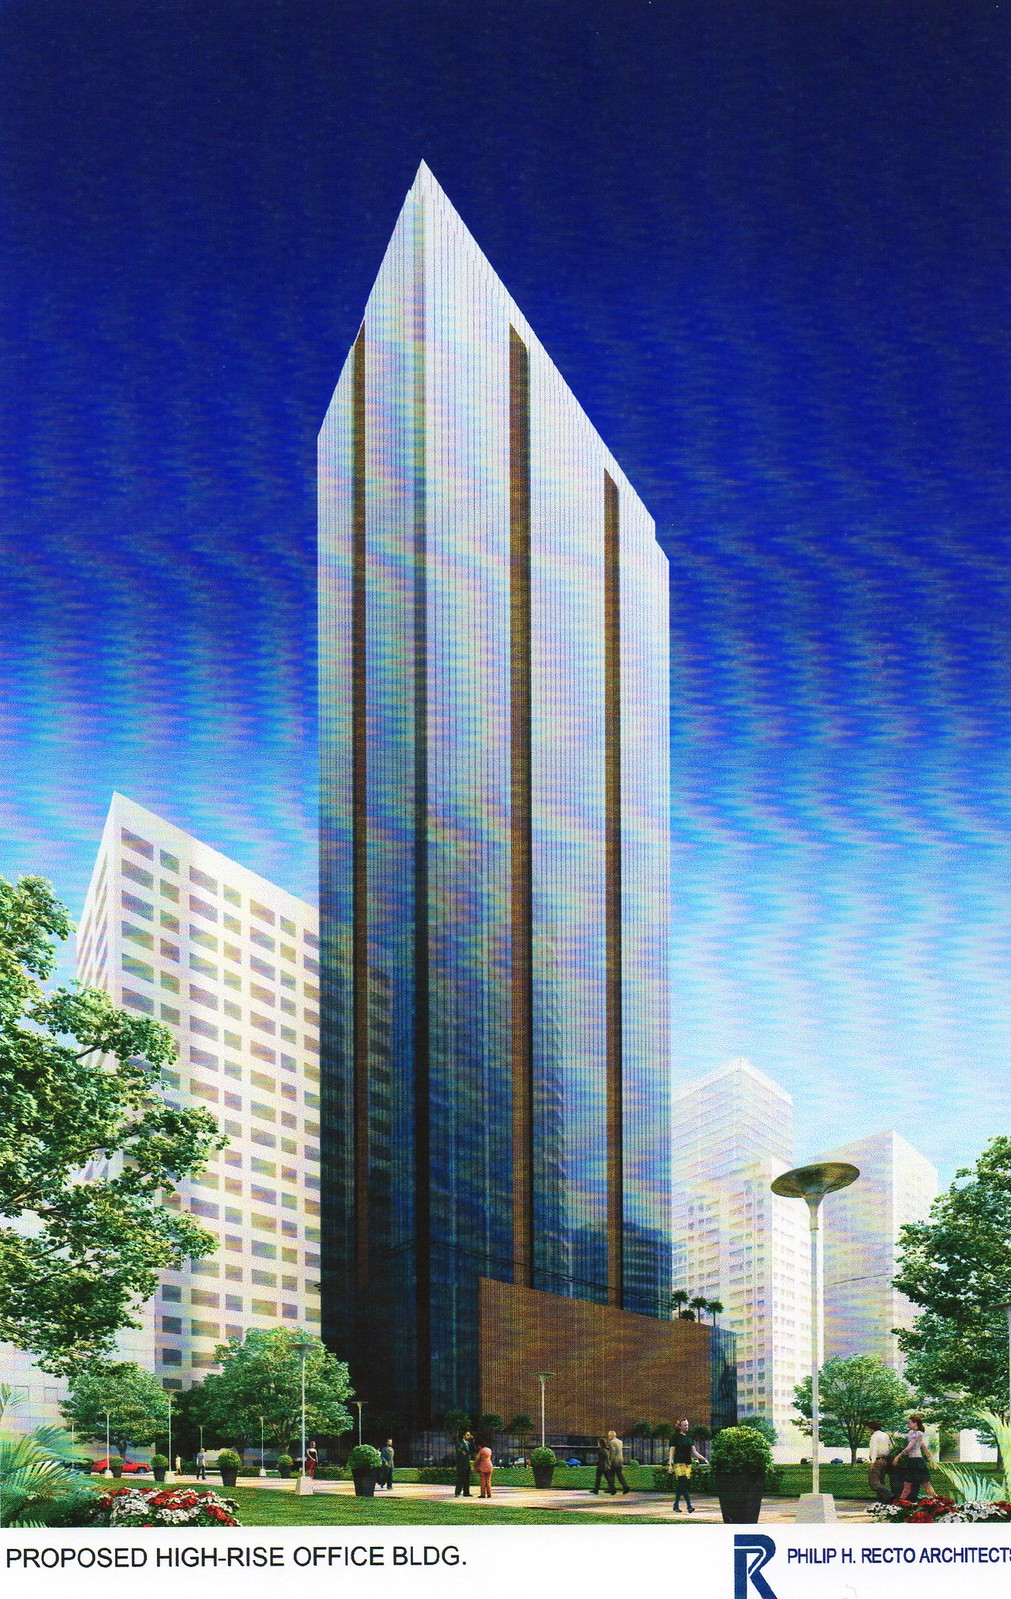 MANILA   Projects & Construction - Page 870 - SkyscraperCity